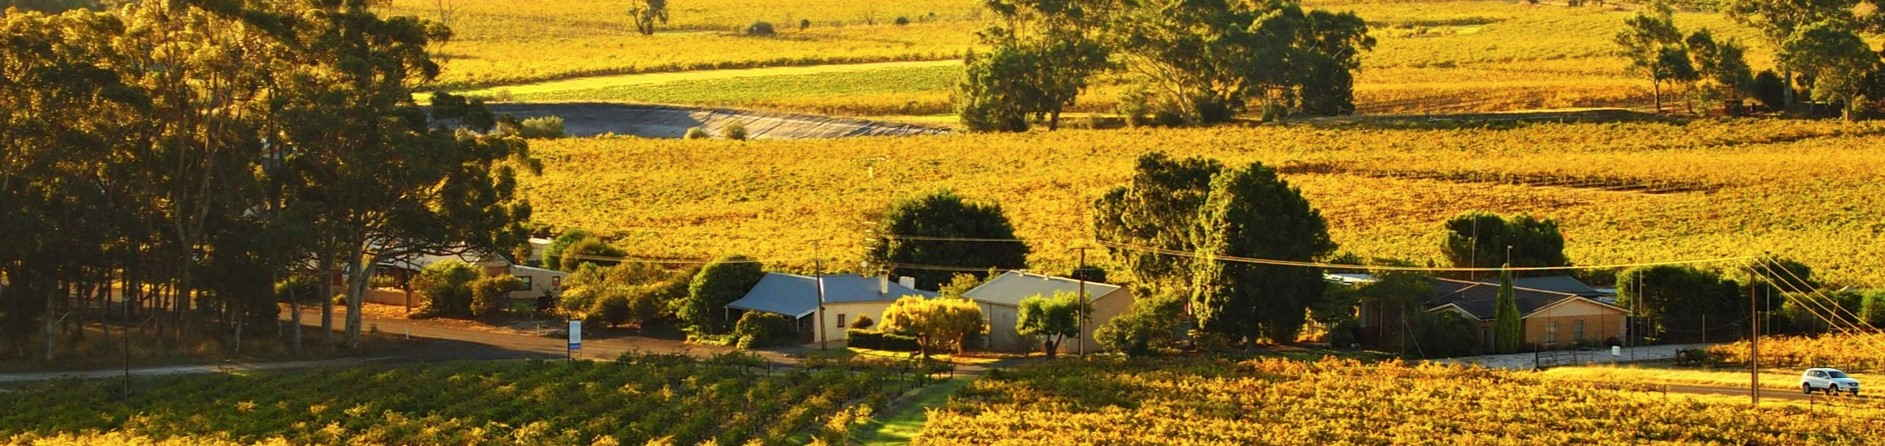 How to Visit the Barossa Valley During Covid-19